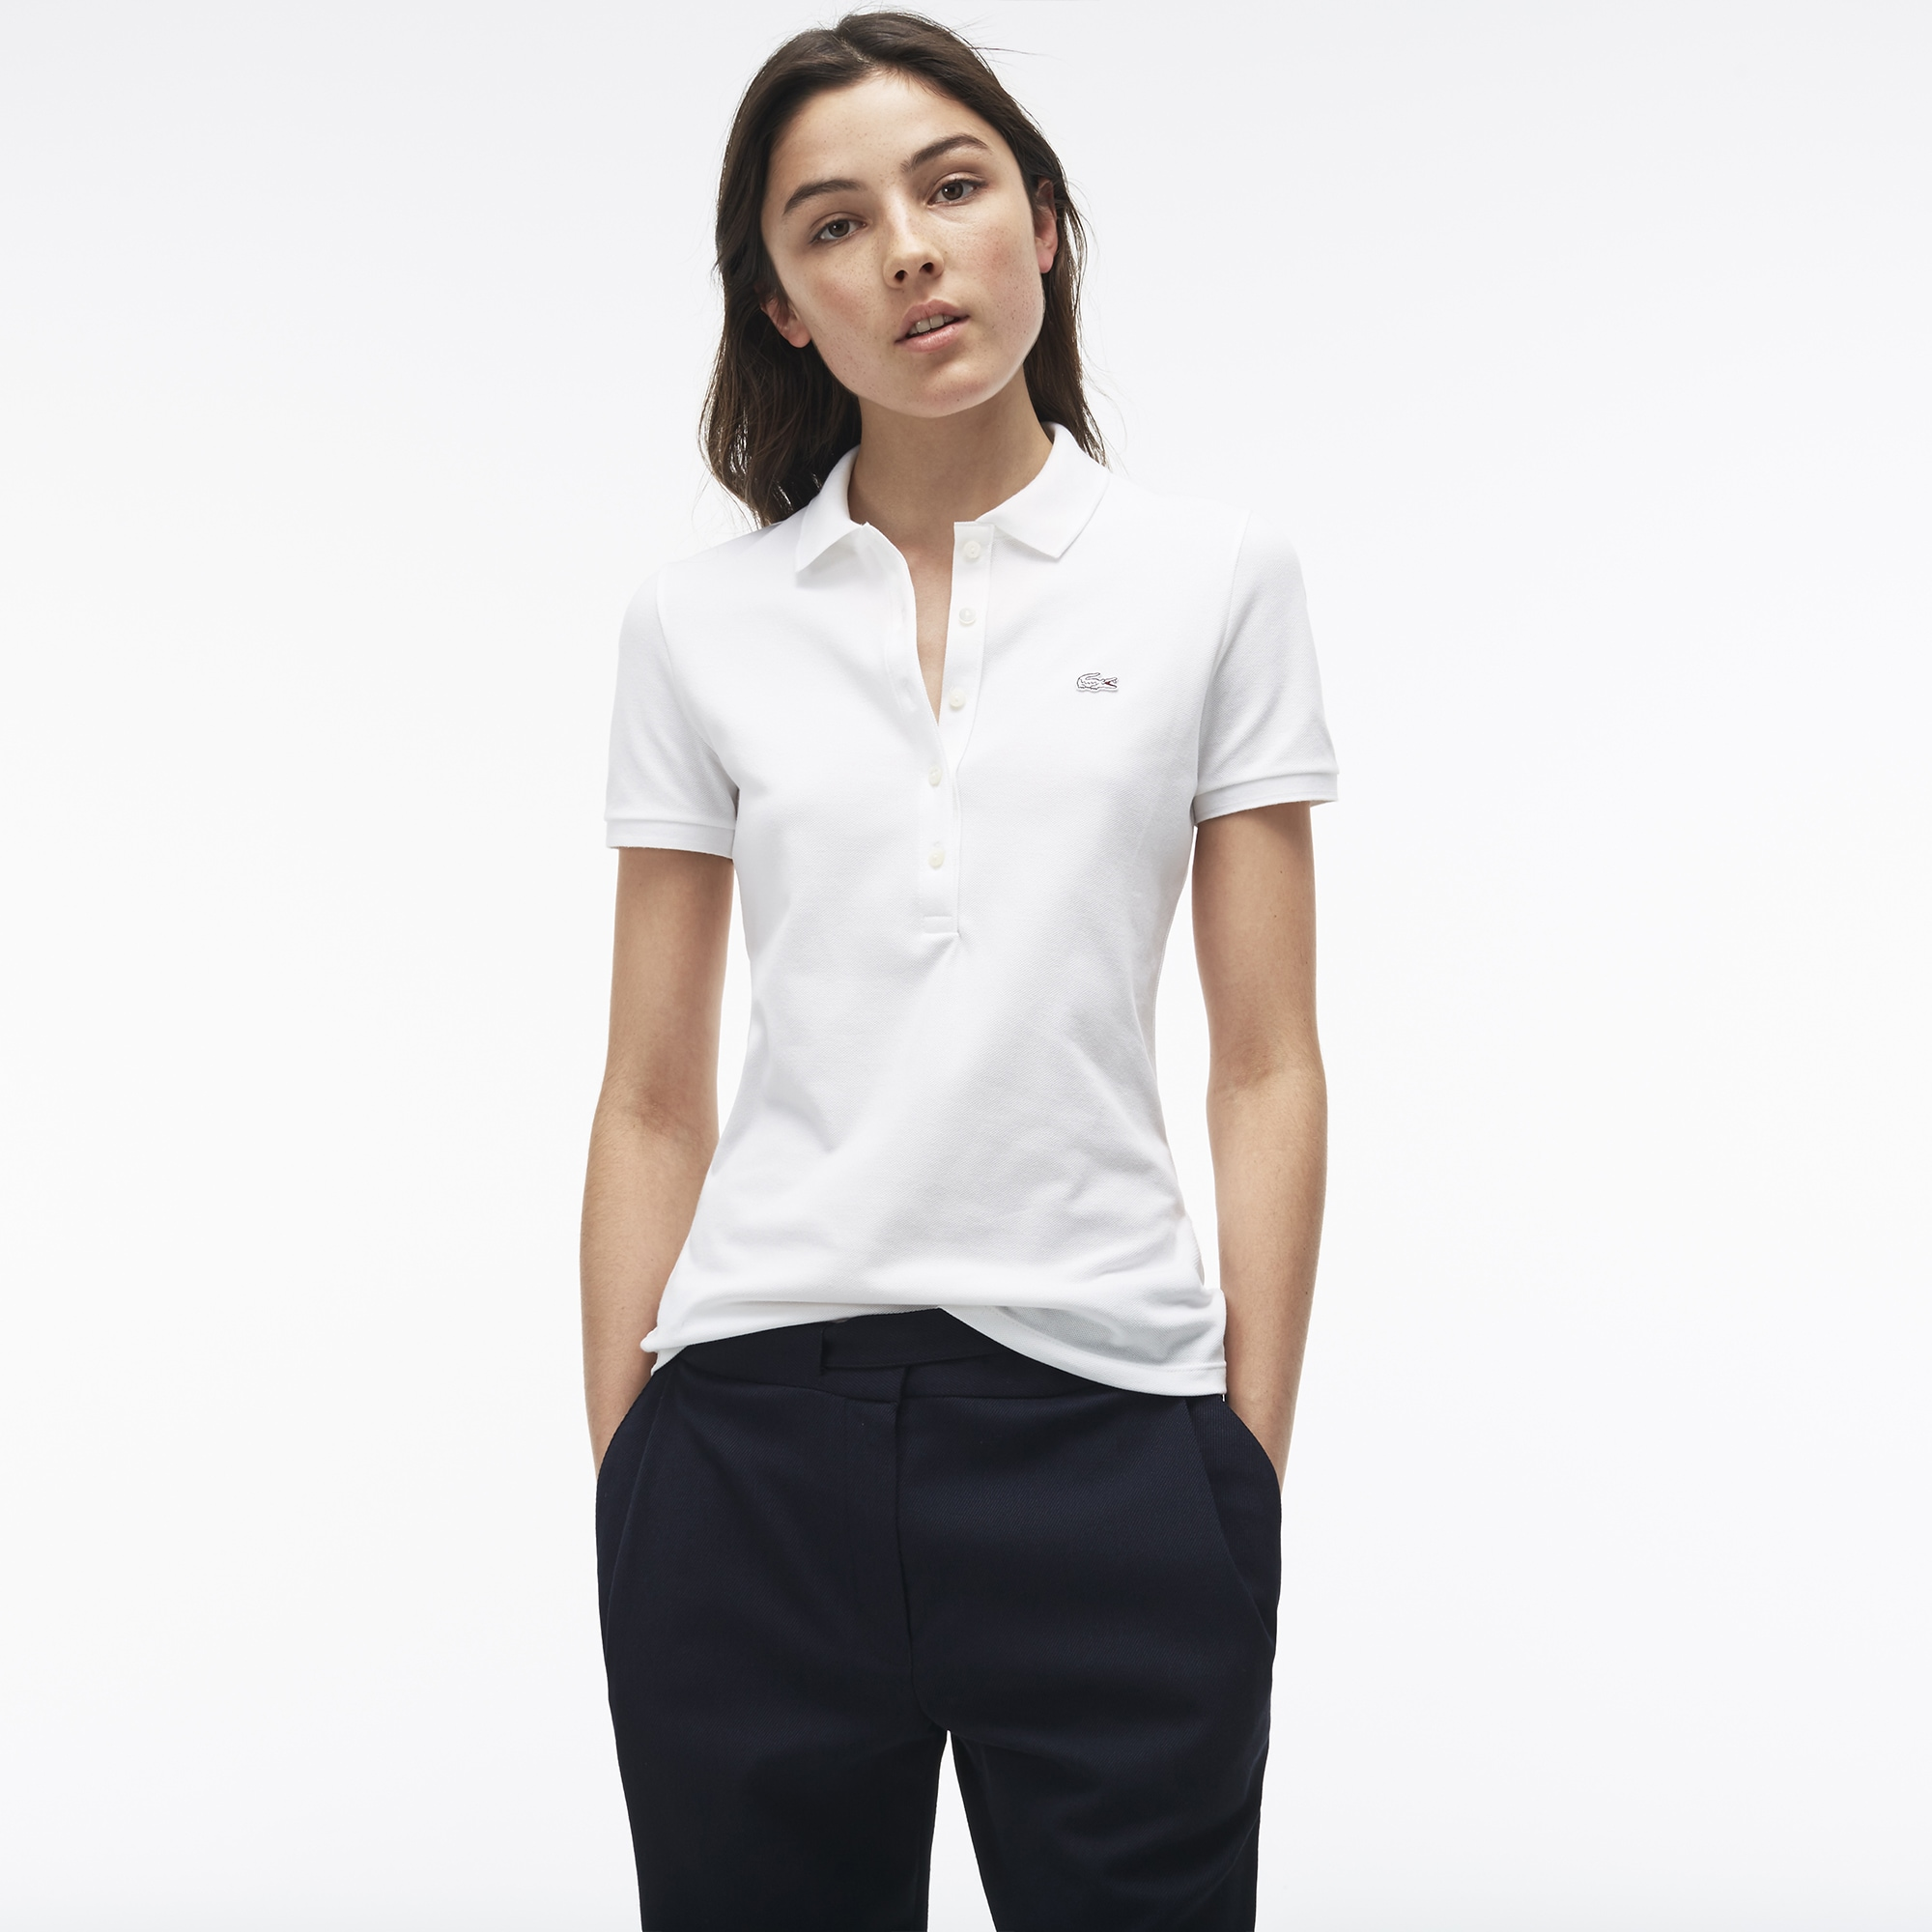 Customized Women's Lacoste Polo